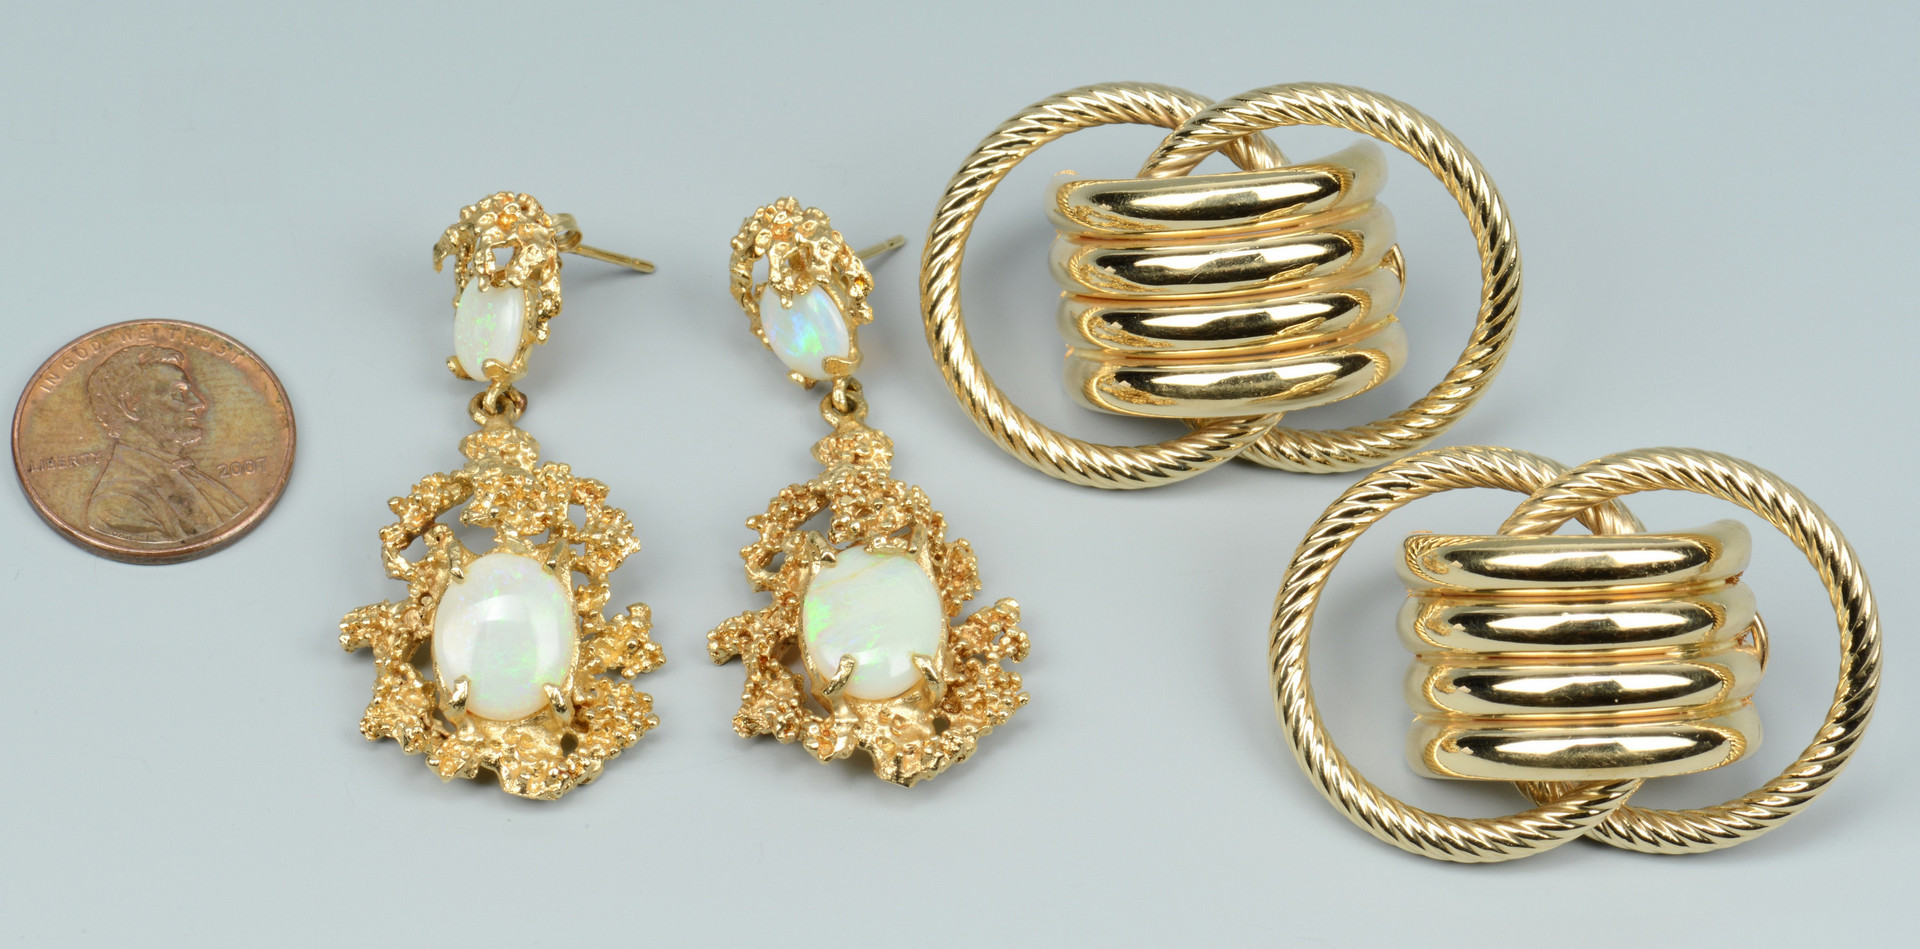 Lot 500: Two Pair 14k Gold Earrings, 1 w/ opals